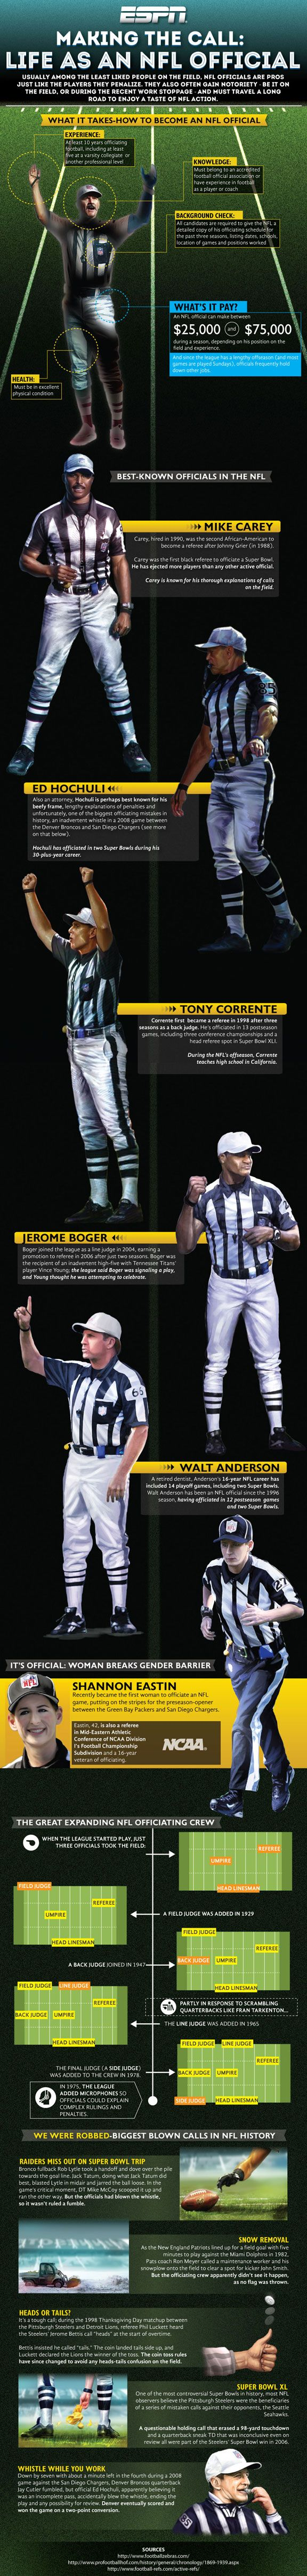 Infographic: Life & times of an NFL official - Sports Pictures, Images, Fan Videos, Galleries - Visuals Blog - ESPN Playbook - ESPN